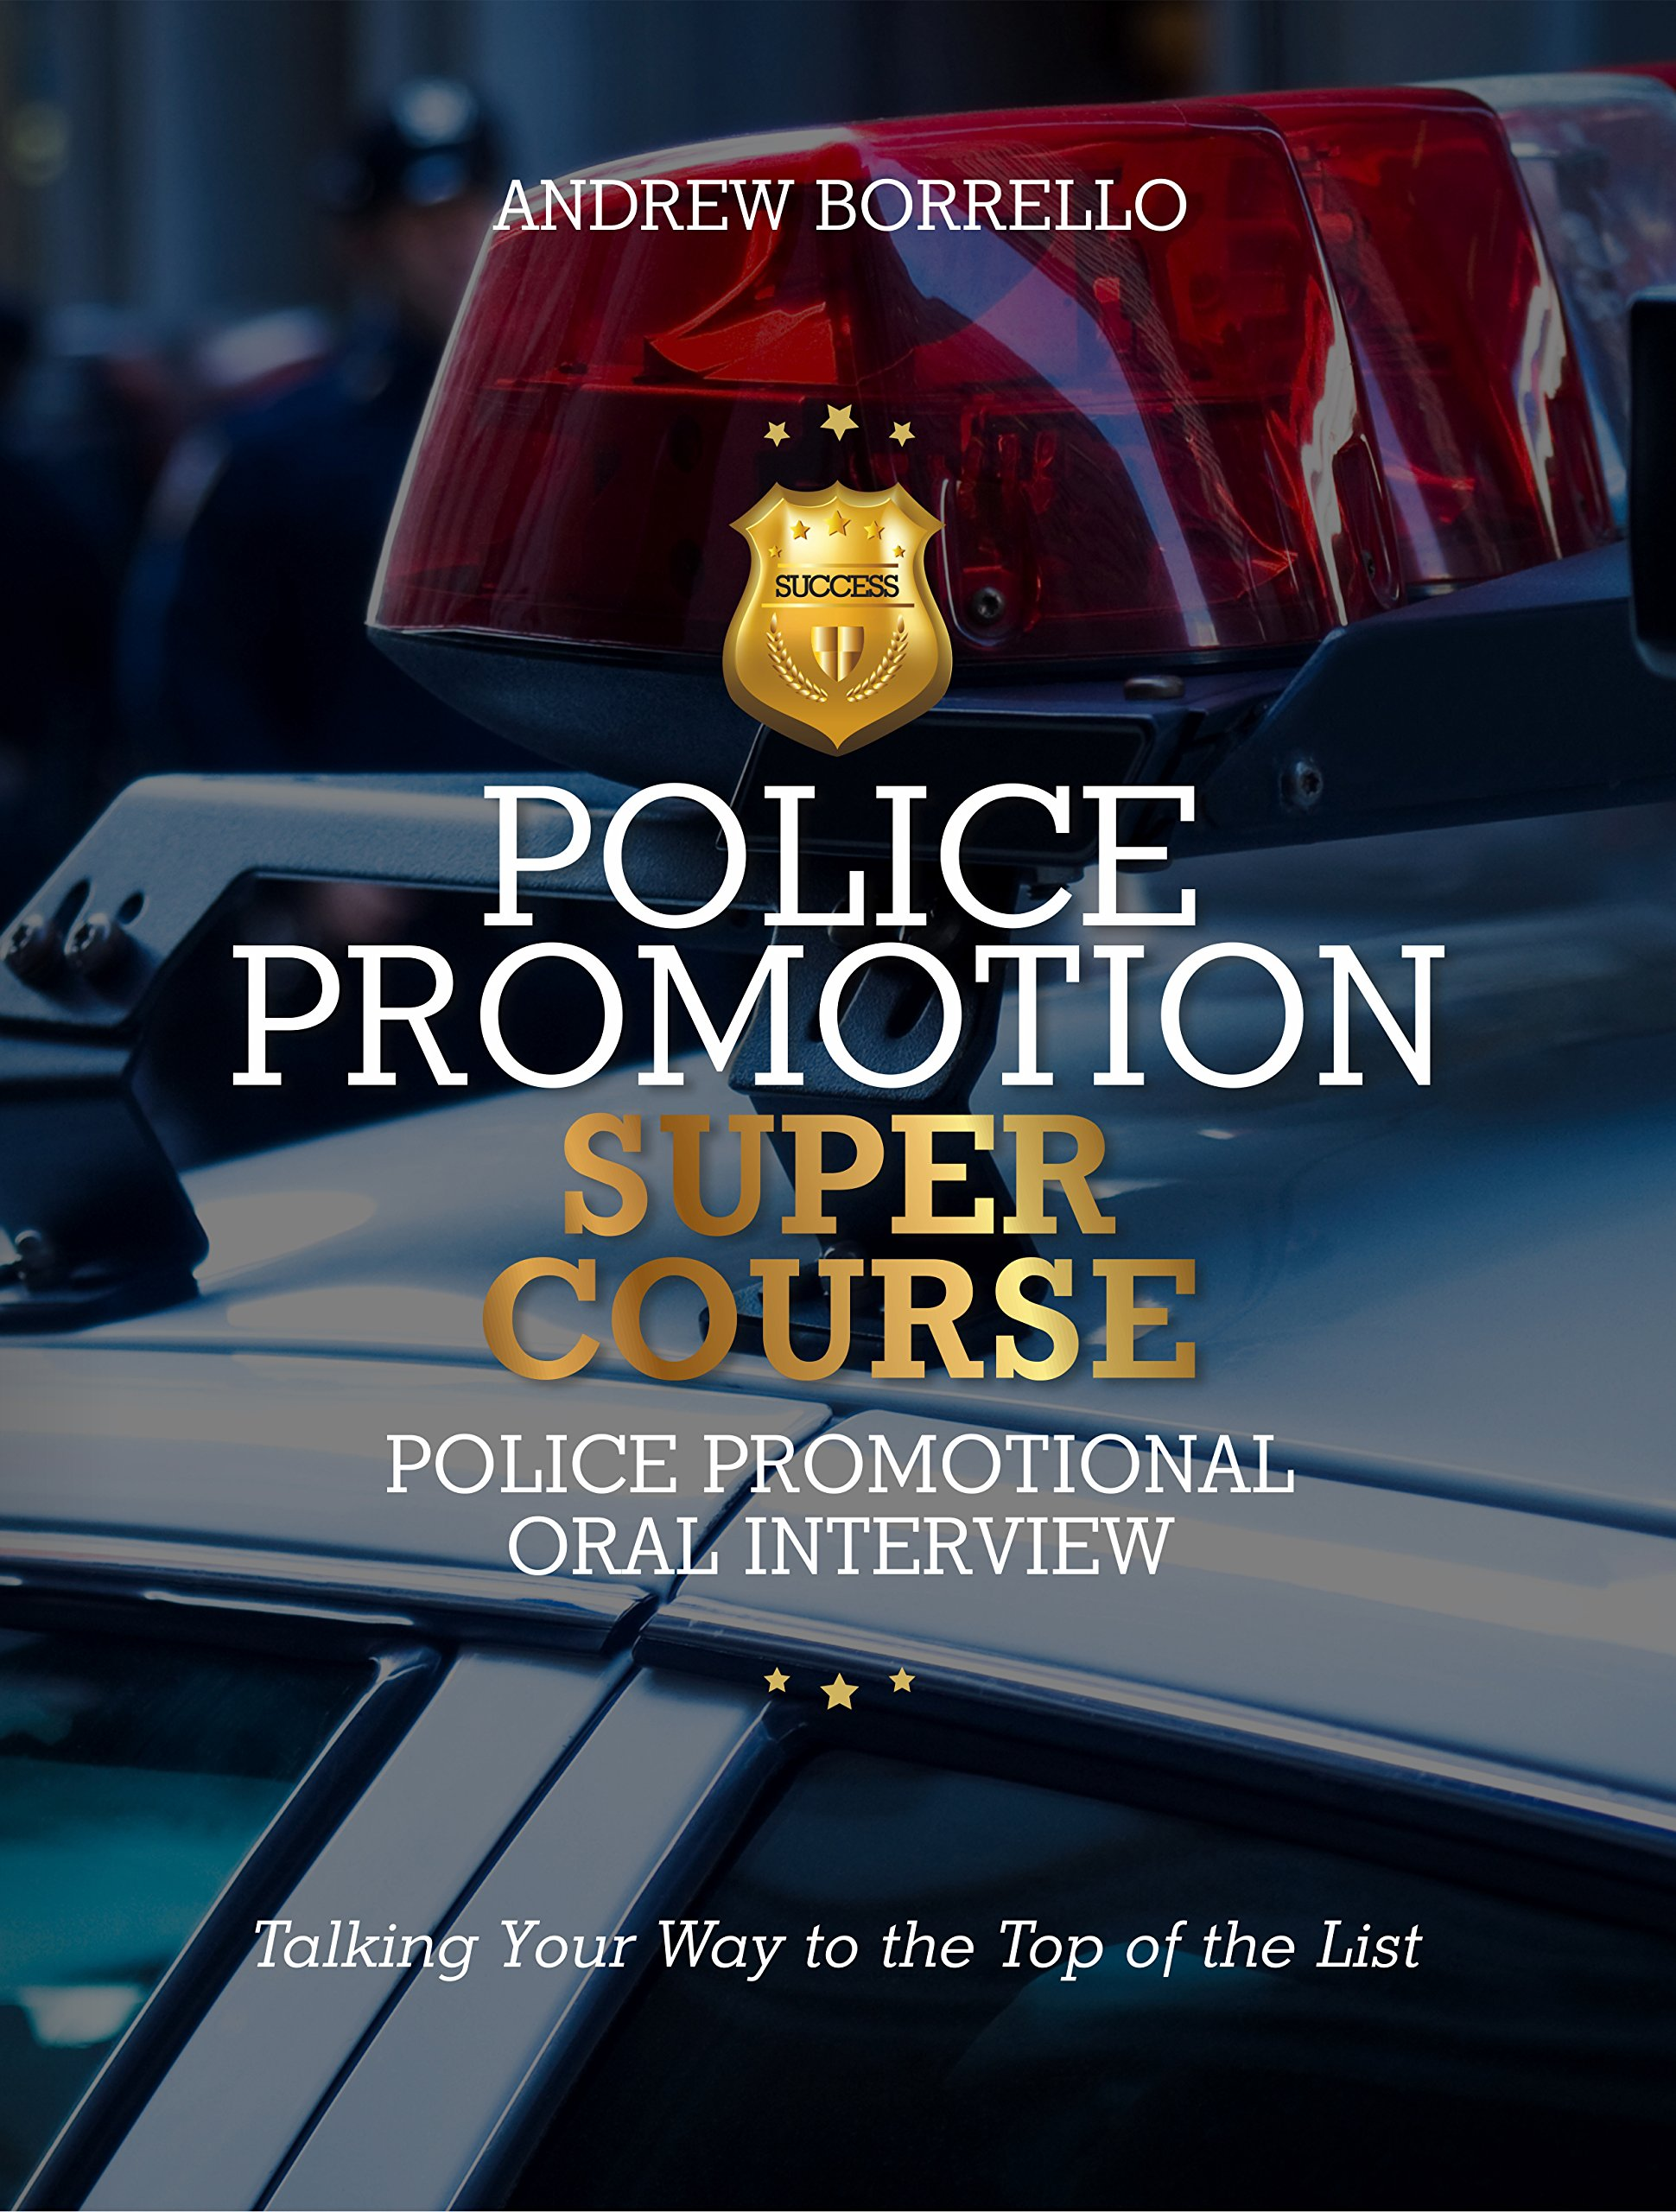 police promotion super course police promotional oral interview andrew borrello amazoncom books